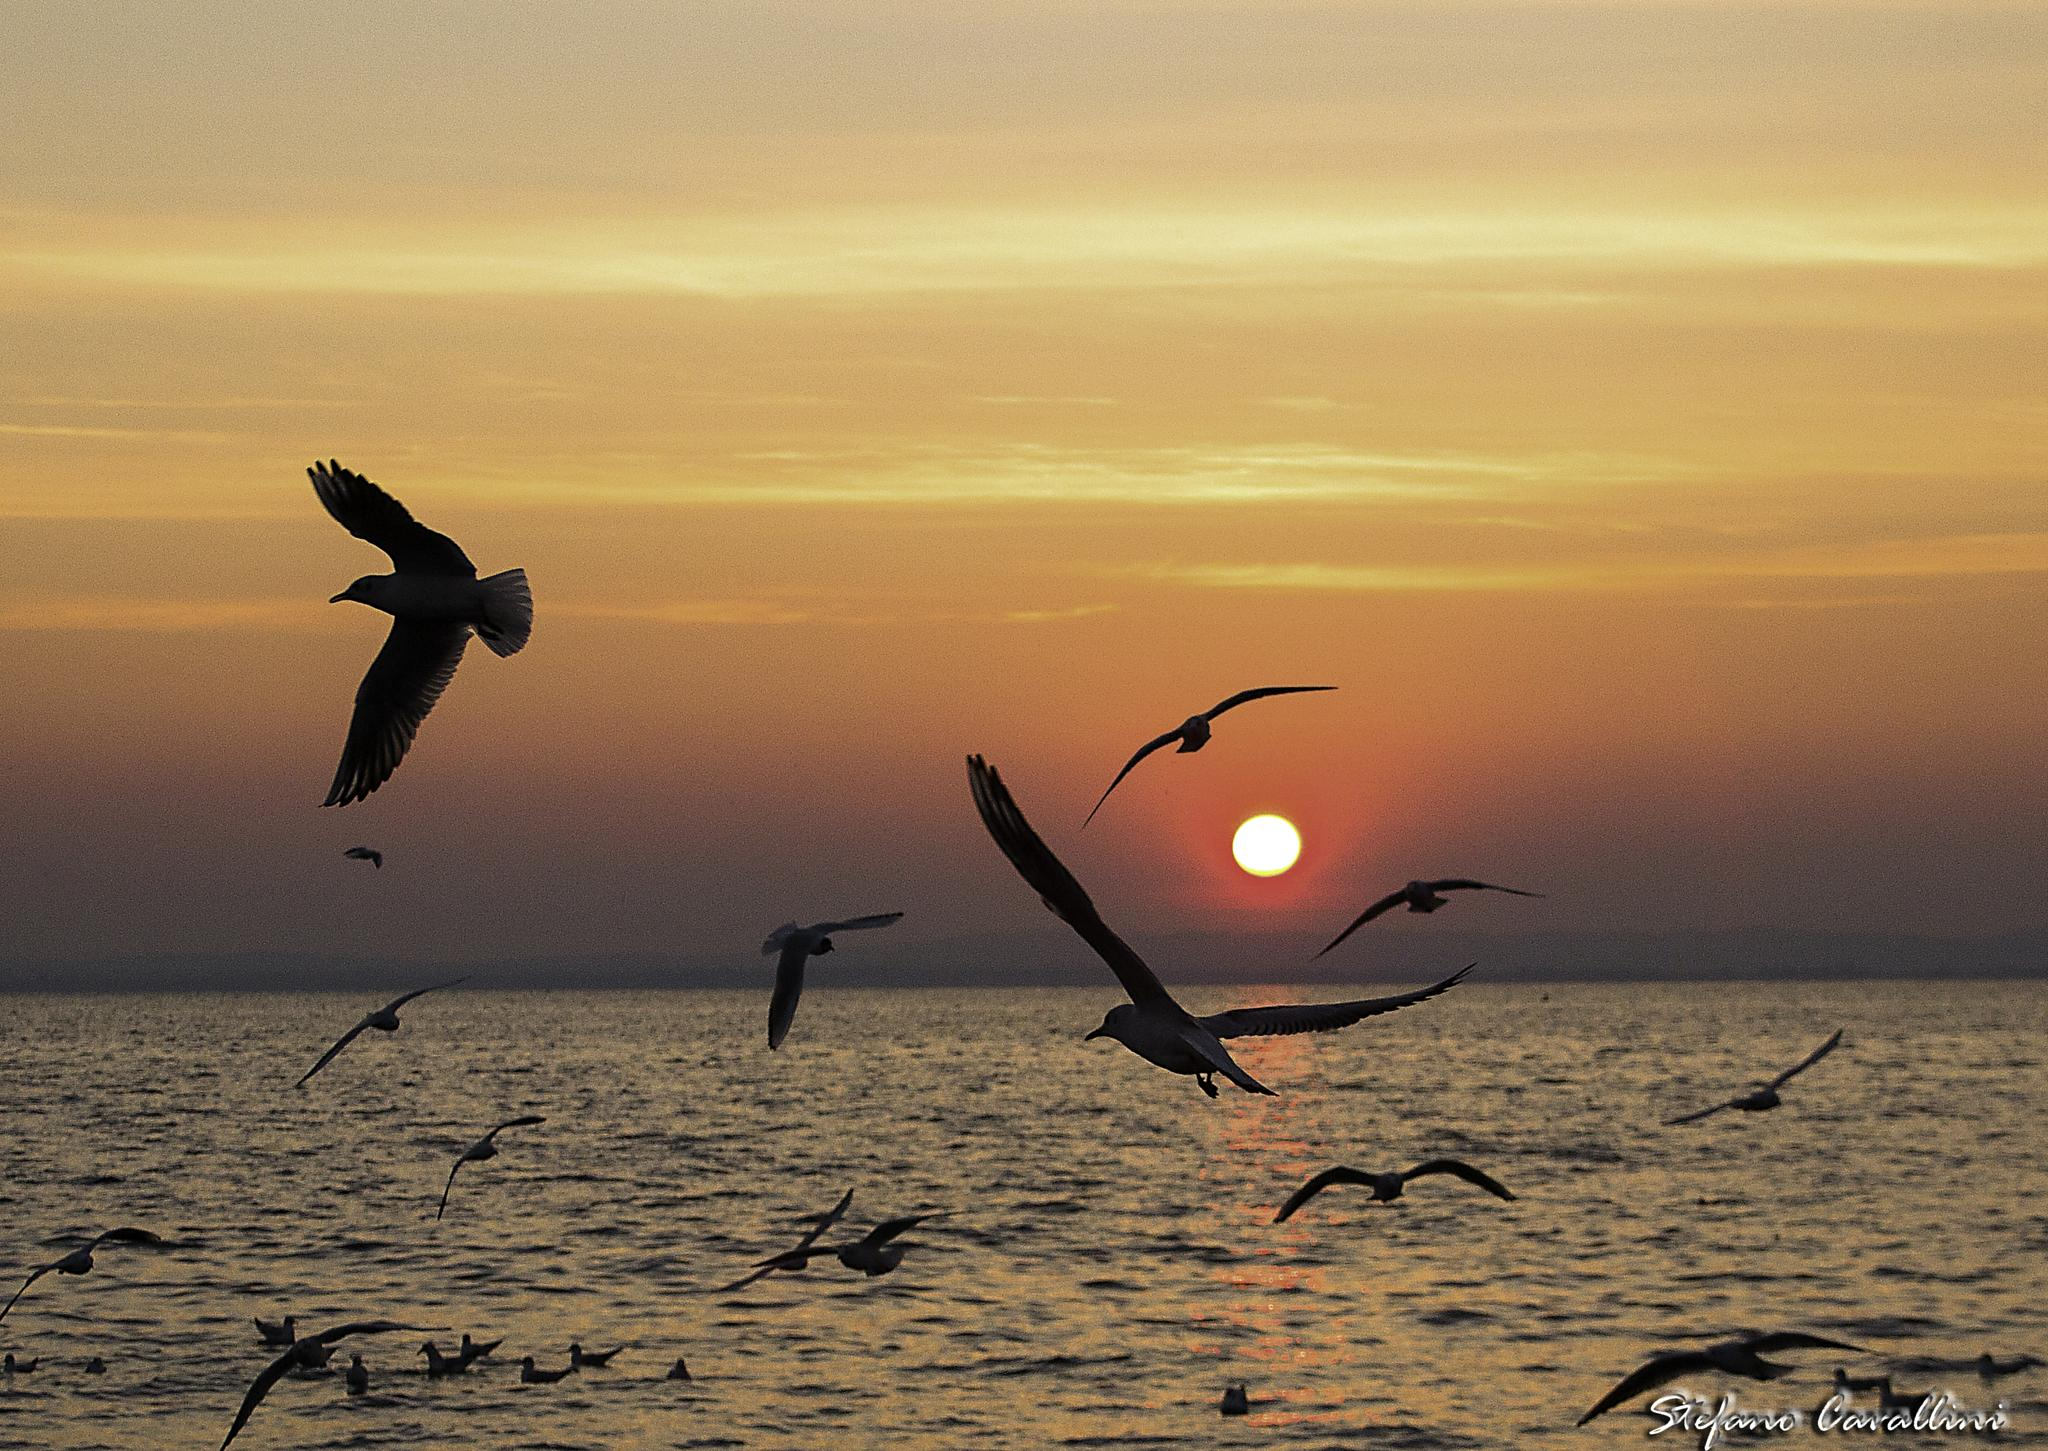 seagulls at sunset on the lake by Stefano Cavallini